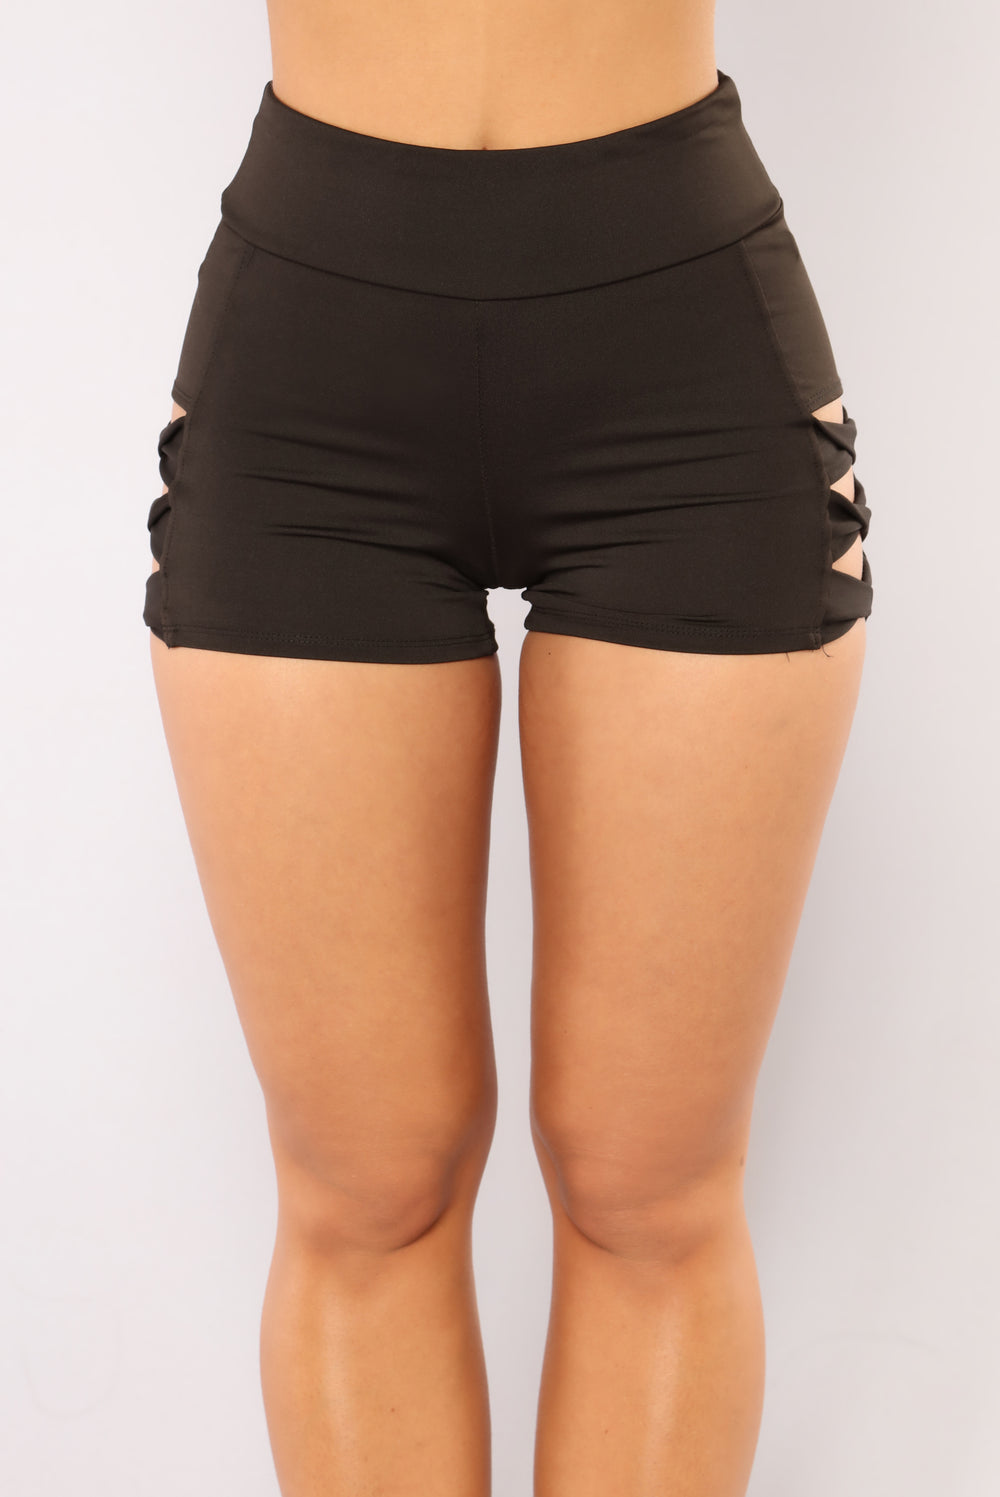 Another Perspective Shorts - Black